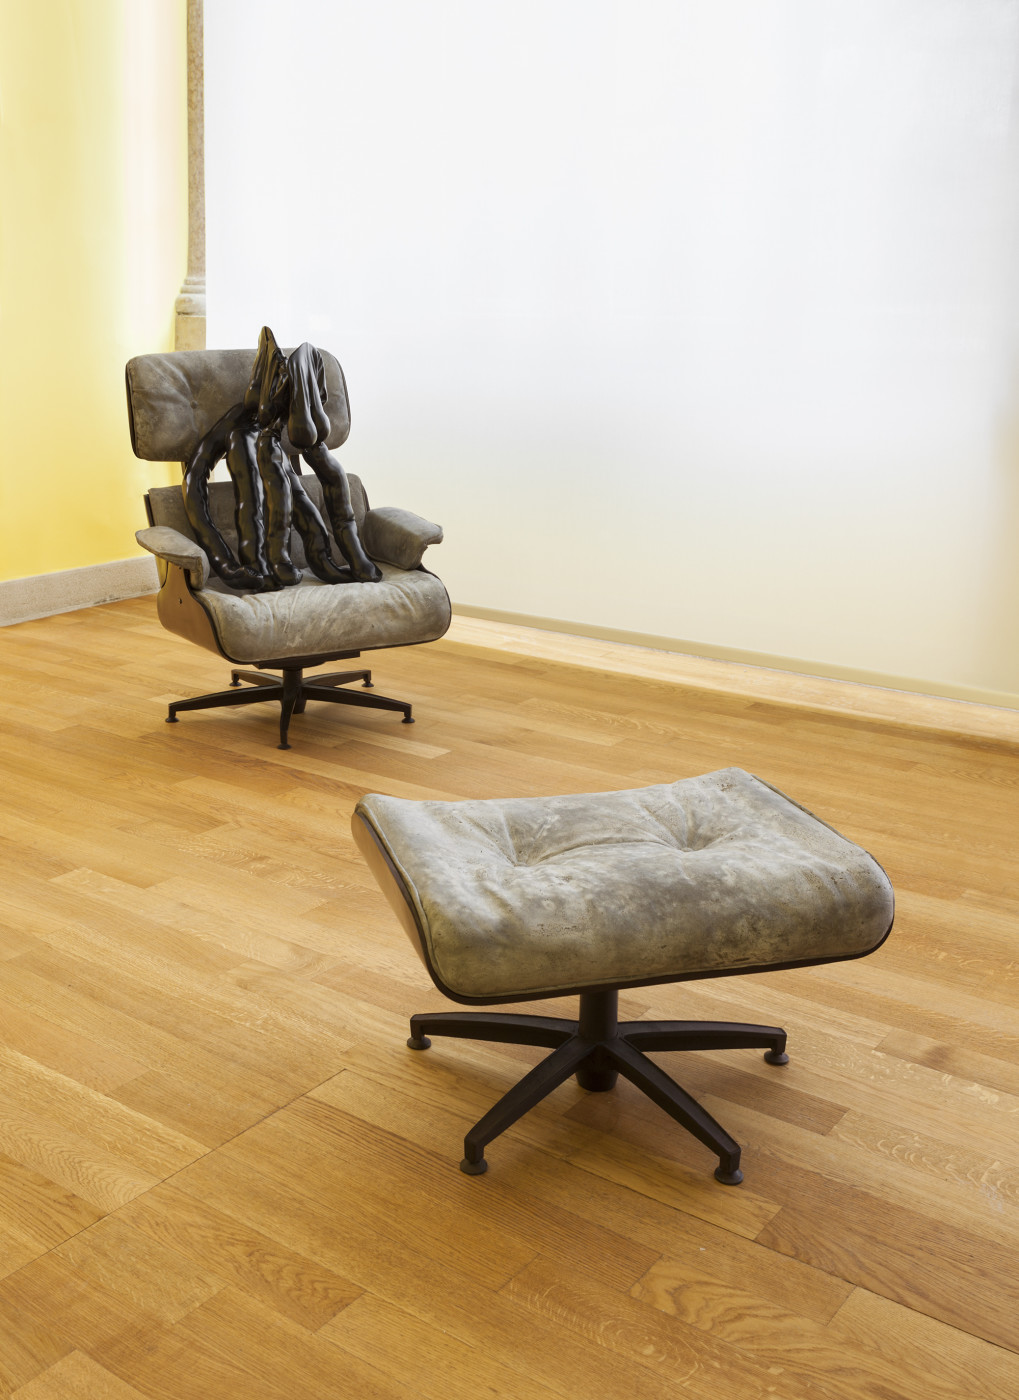 "<div class=""title""><em>Tit-Cat Eames Chair</em>, 2015</div><div class=""medium"">bronze, concrete</div><div class=""dimensions"">103.0 x 81.0 x 78.0 cm<br />40 1/2 x 31 7/8 x 30 11/16 in.</div>"